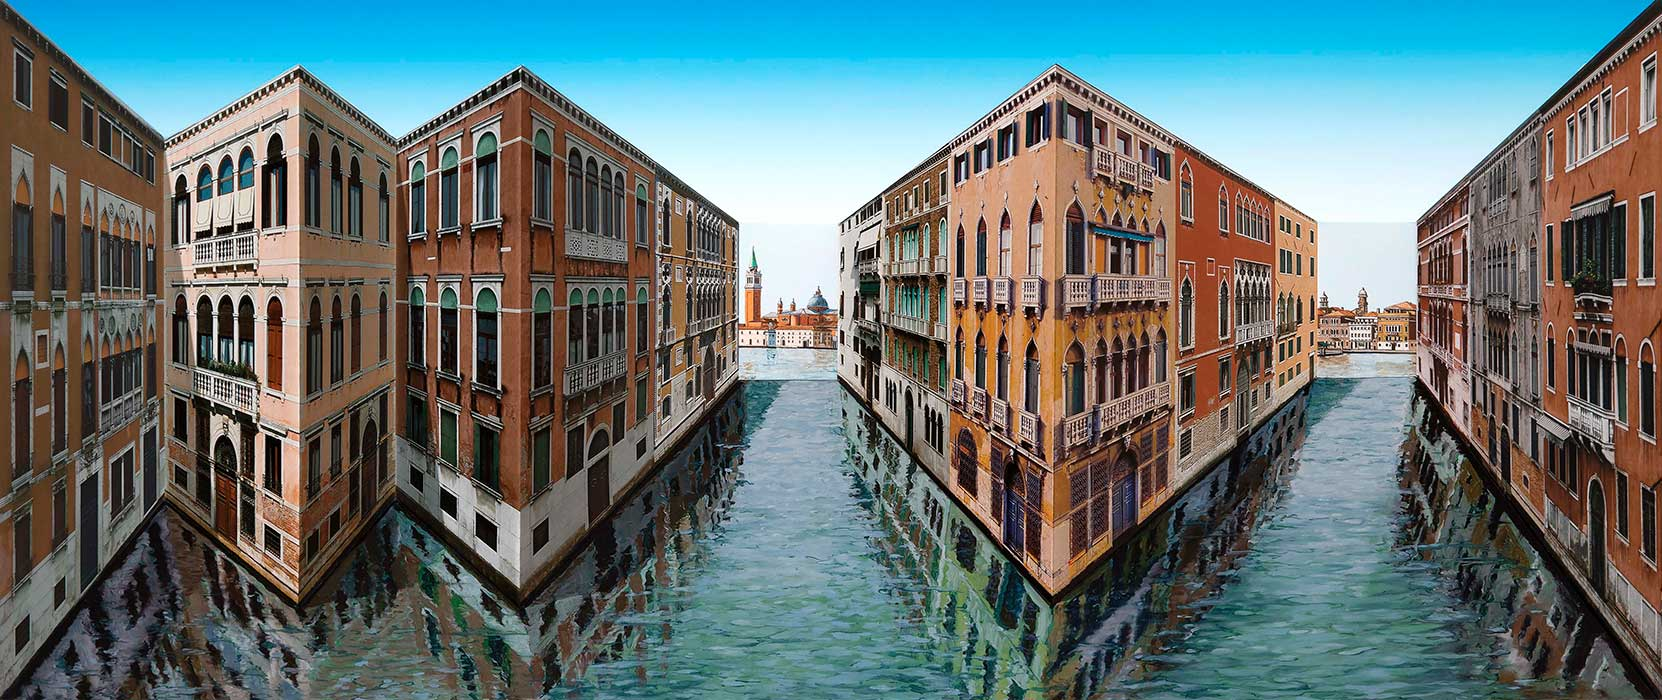 Venise en reperspective